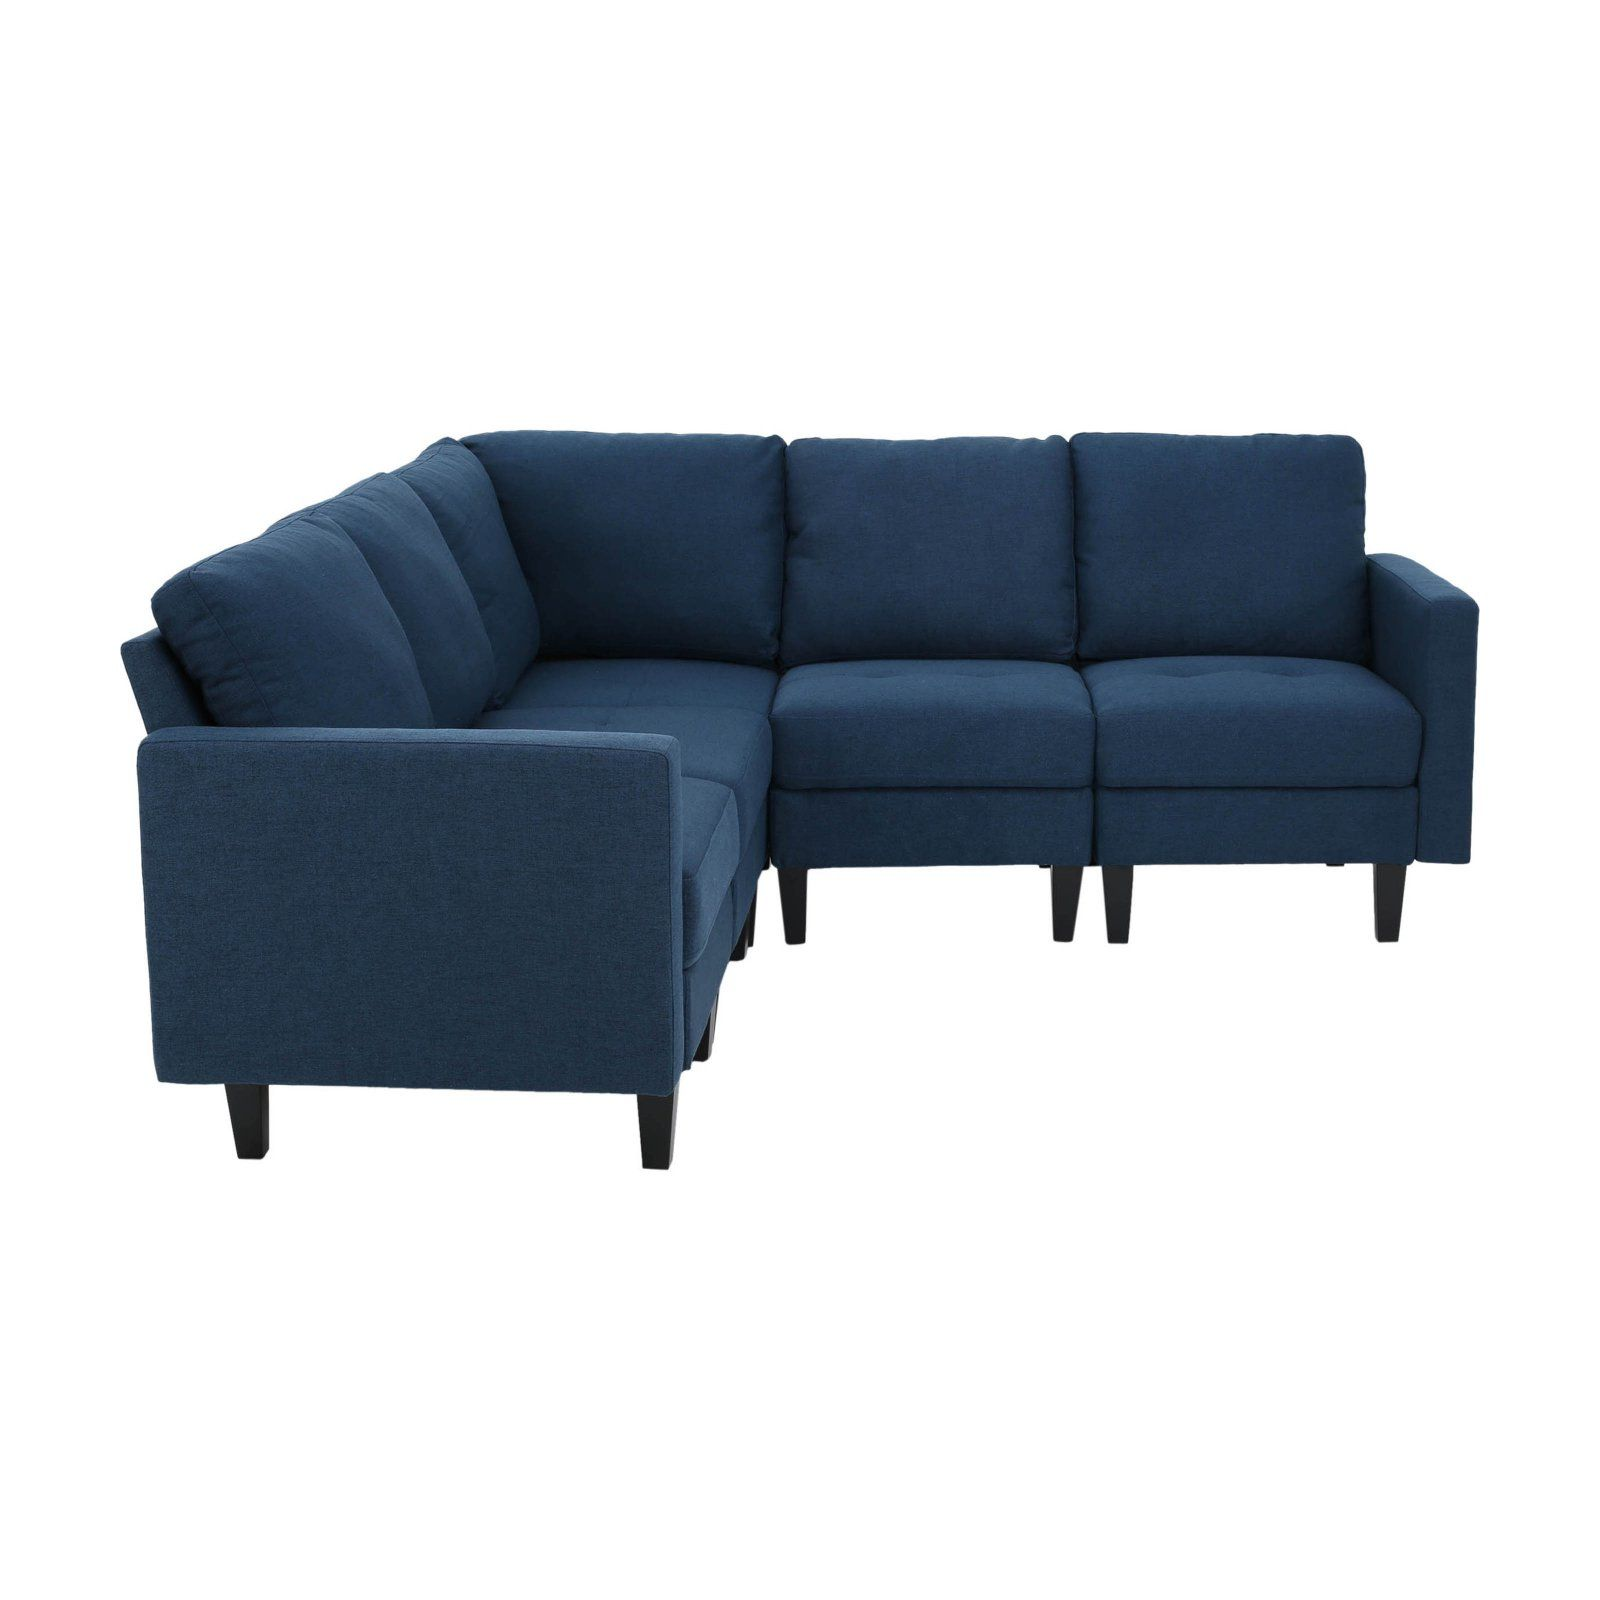 Zahra Tufted Sectional Sofa With Images Tufted Sectional Sofa Sectional Sofa Tufted Sectional